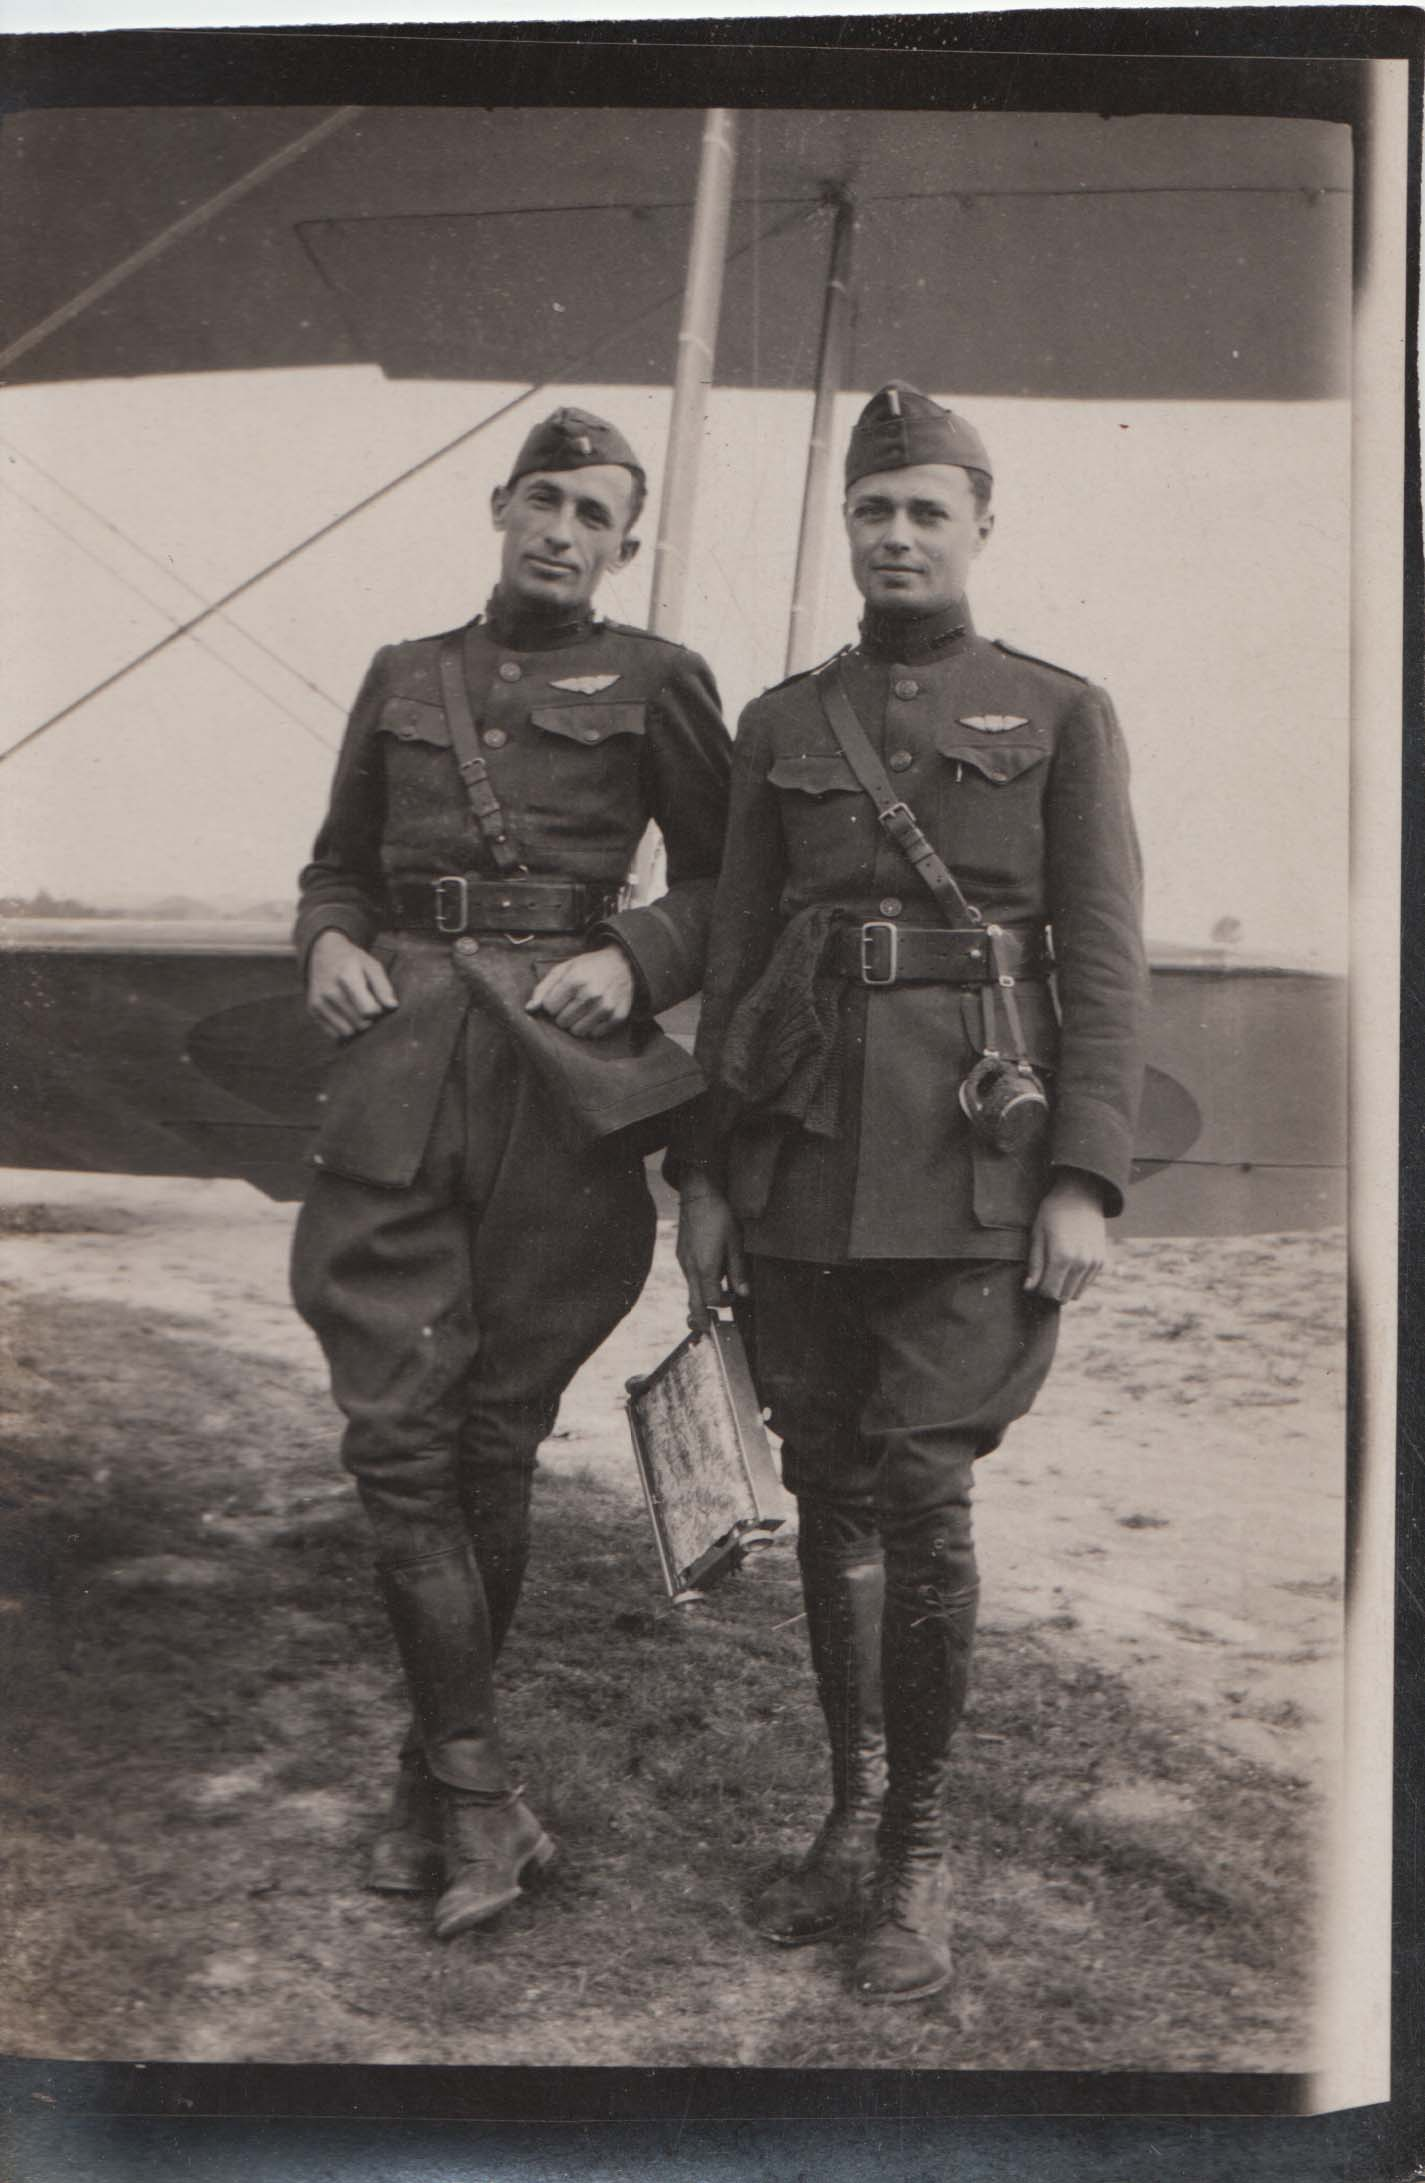 0283 Two Pilots Leaning on Plane